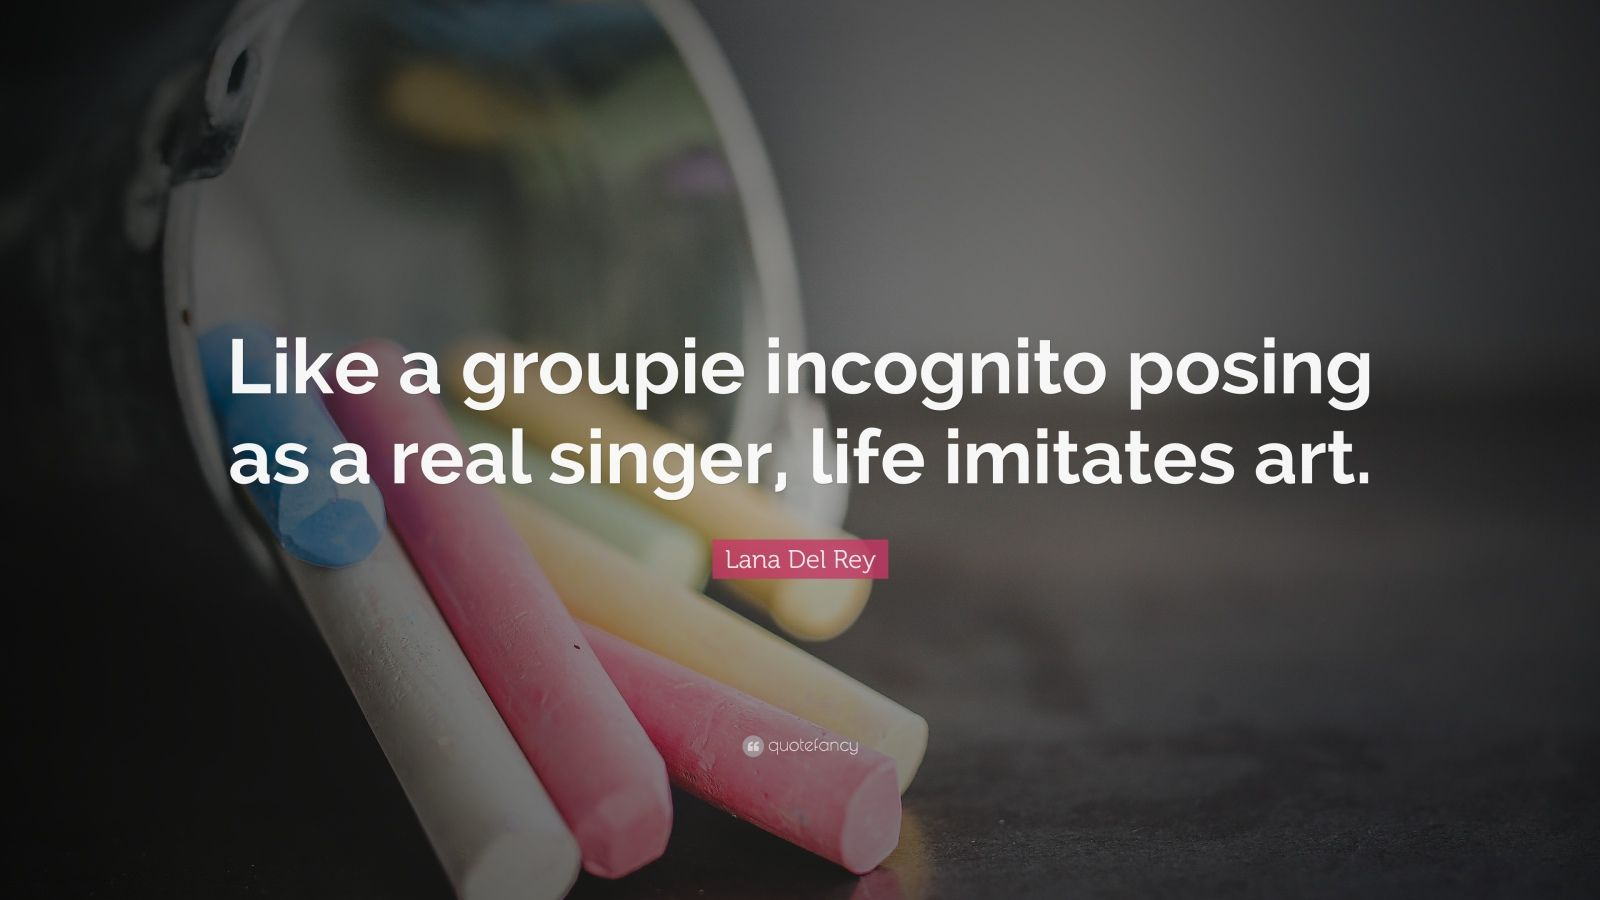 """Lana Del Rey Quote: """"Like a groupie incognito posing as a real singer, life imitates art."""""""